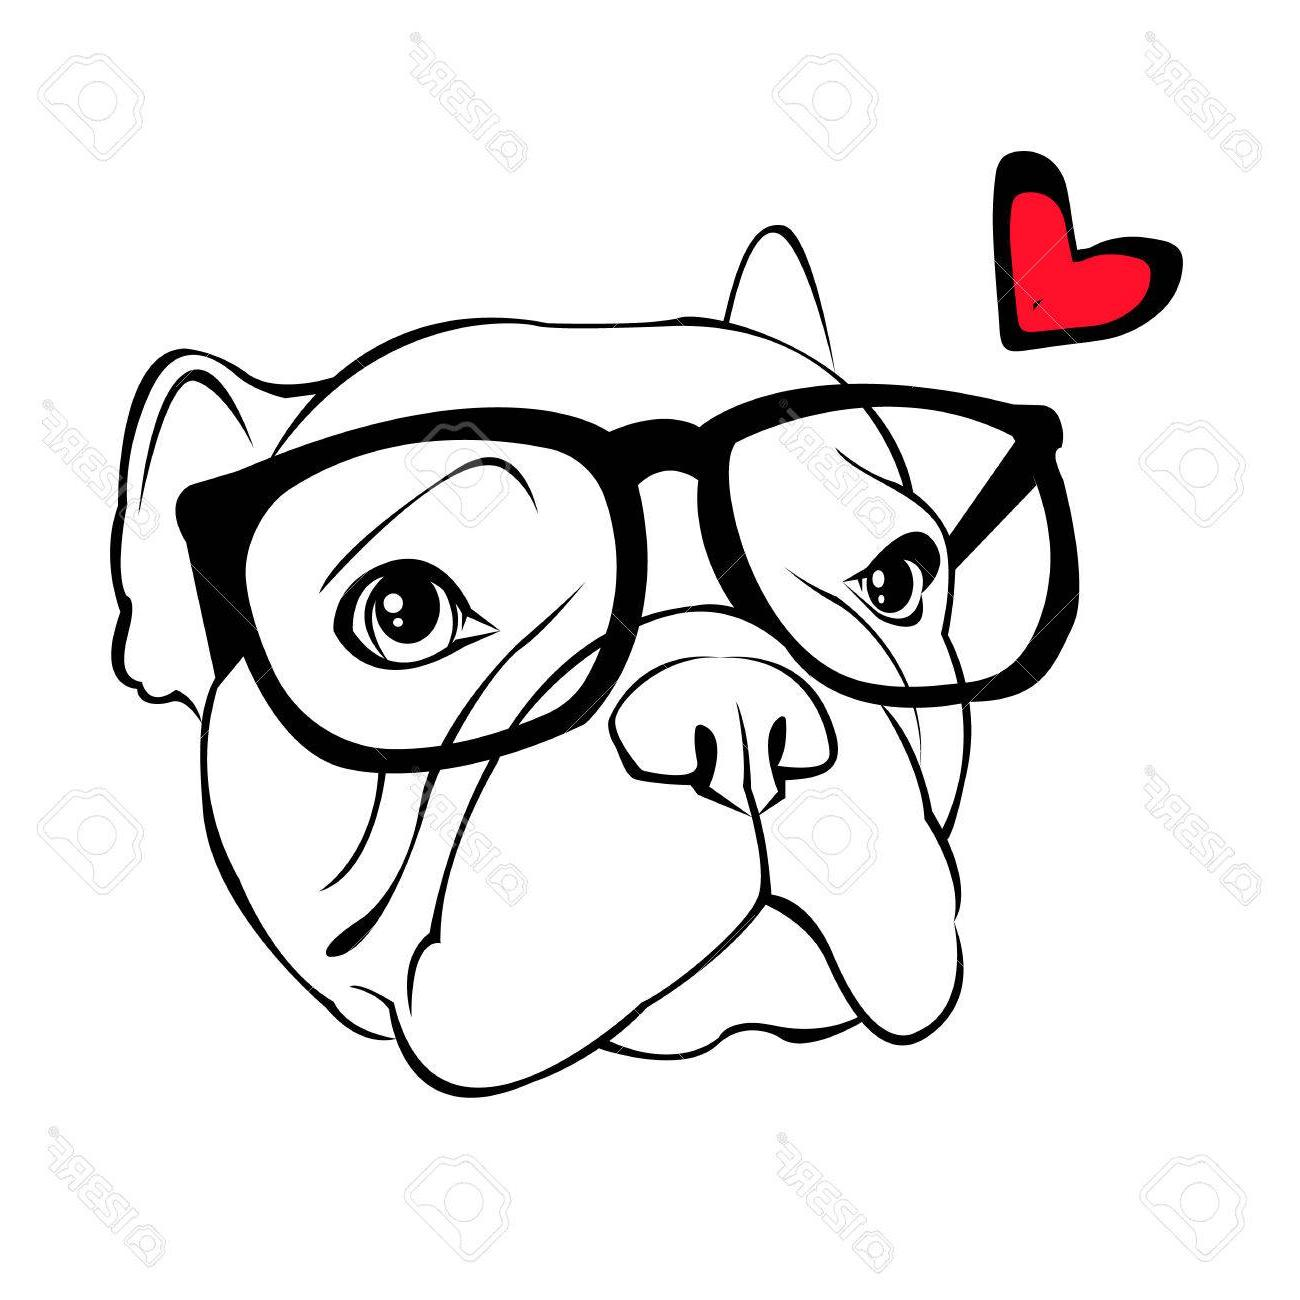 1300x1300 Best French Bulldog Vector Illustration For Poster Cute Puppy Dog